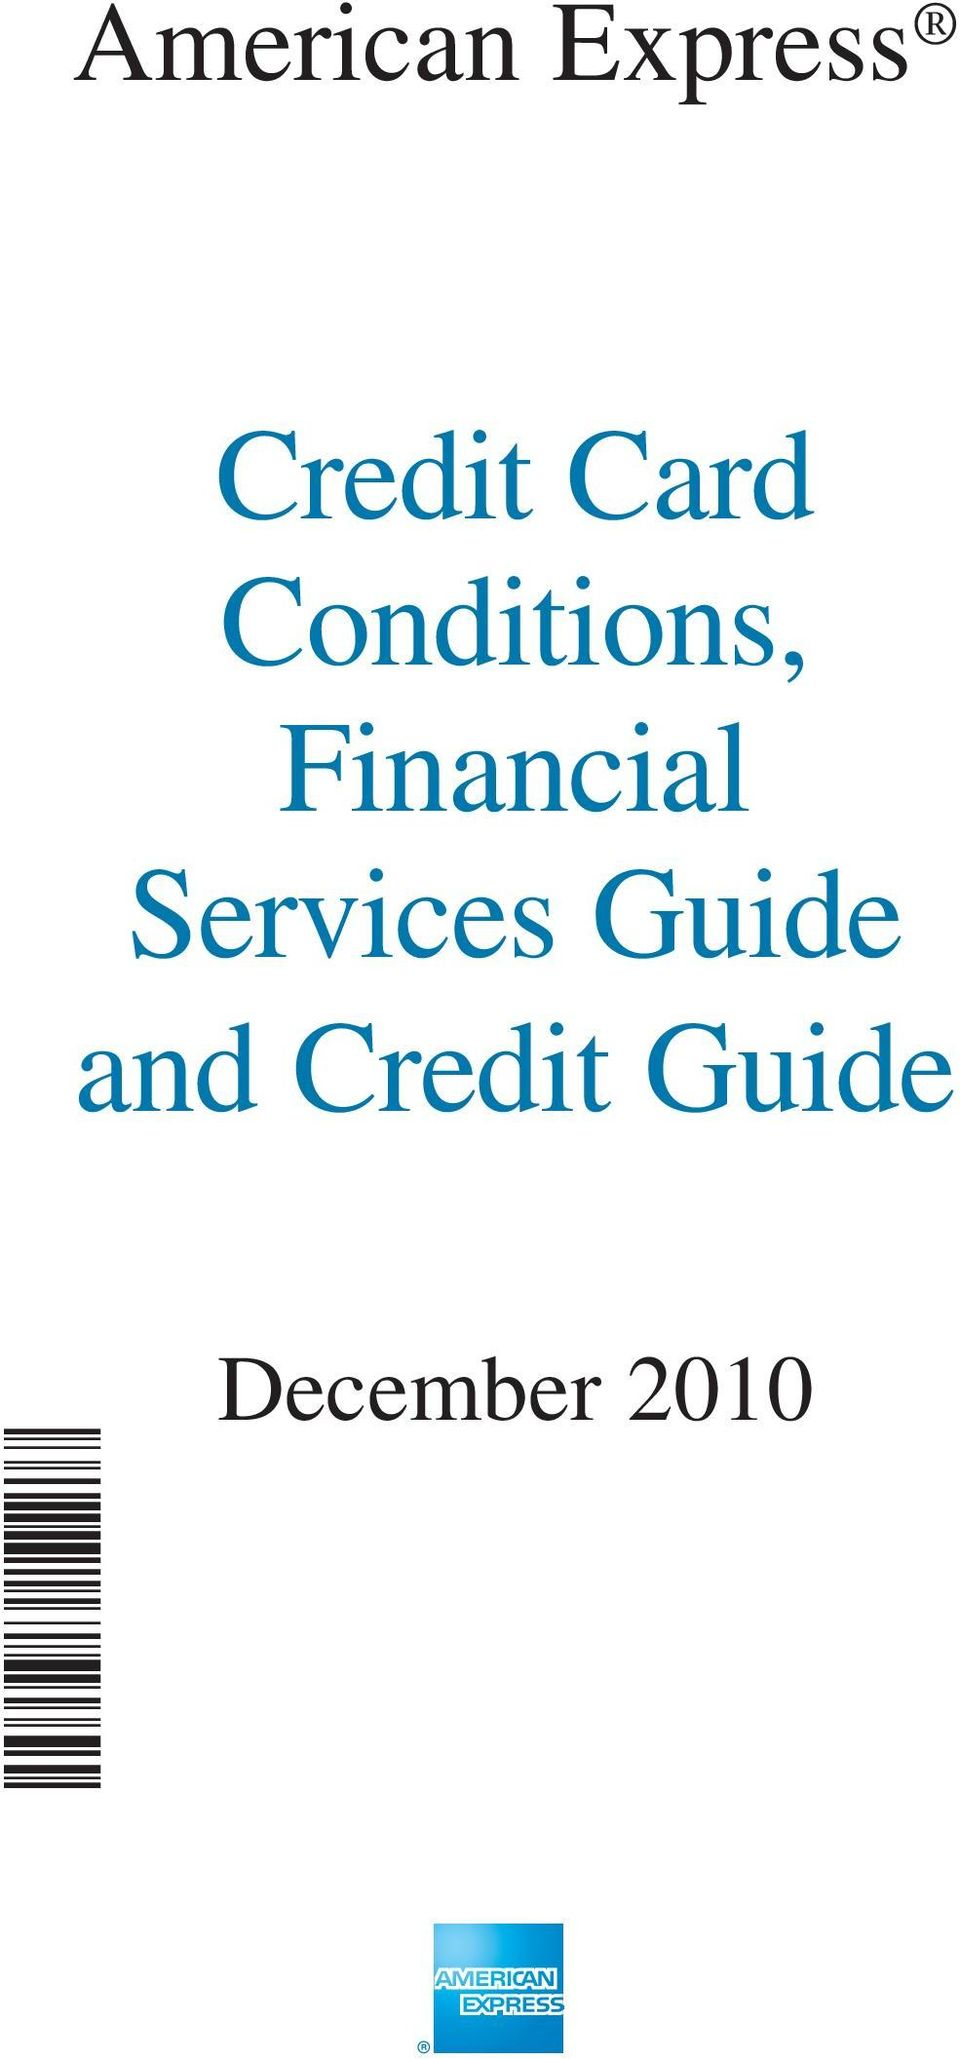 Services Guide and Credit